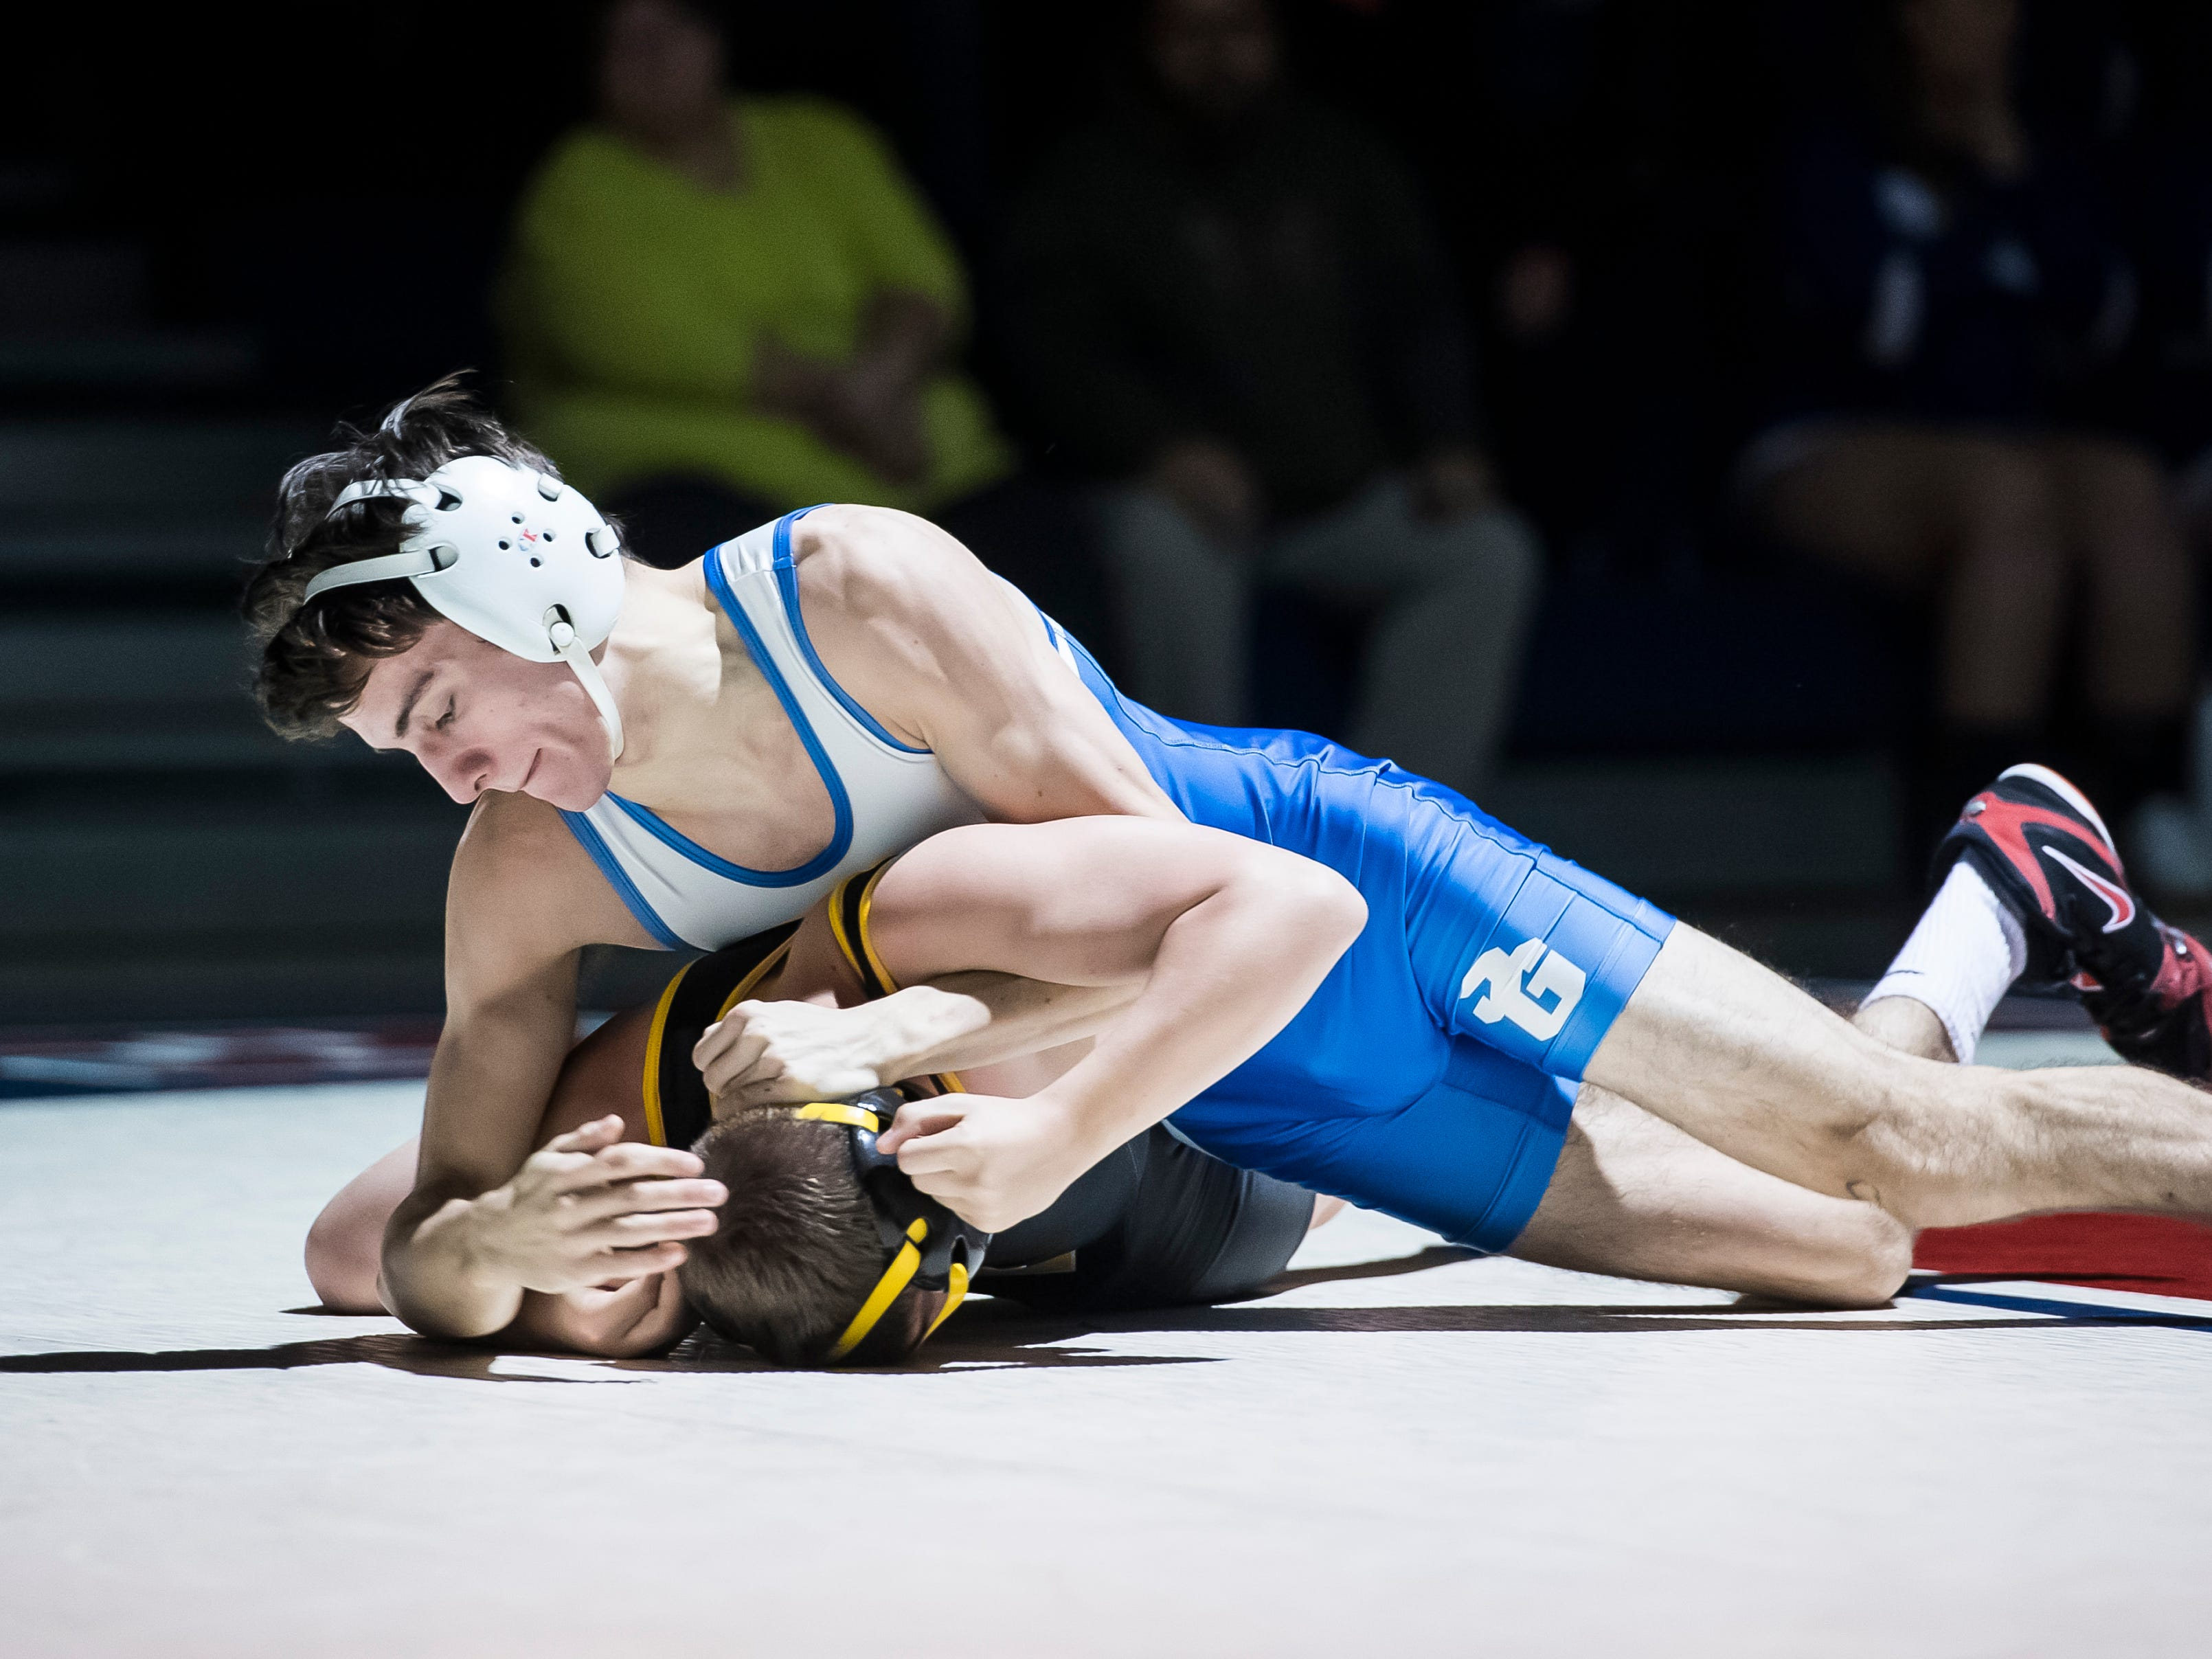 Spring Grove's CJ Styk, top, wrestles Red Lion's Dalton Boyer in the 120-pound bout at Spring Grove High School on Wednesday, December 12, 2018. The Rockets won the dual 68-9.